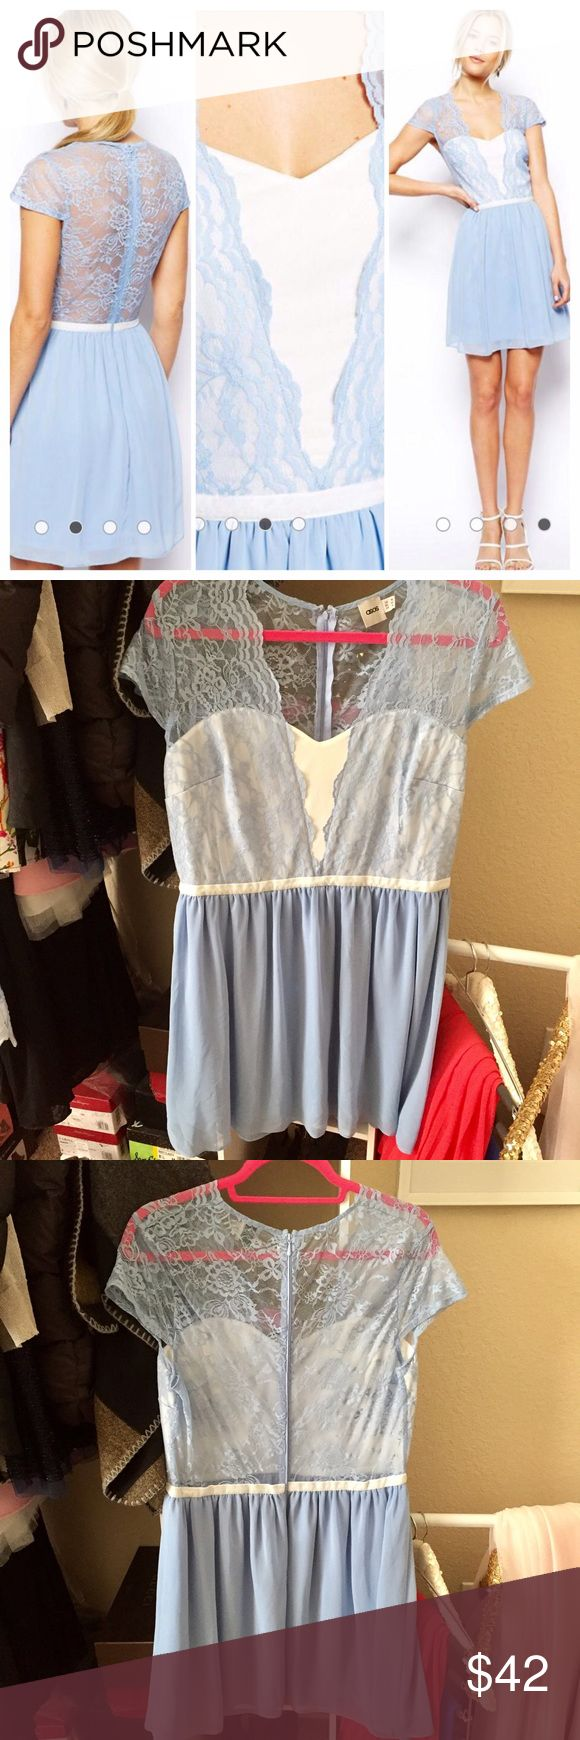 💖 Beautiful Lace Skater Dress 💖 Like New (only worn a couple of times) ✨ All over delicate soft blue lace layer. Sweetheart neckline with contrast trim waistband ✨ Gentle pleading to skirt and zip back closure ✨ Size fits L/XL ✨ Can be shipped within 24 hrs 📬 ✨ 🚫 Trades/🅿️ ASOS Dresses